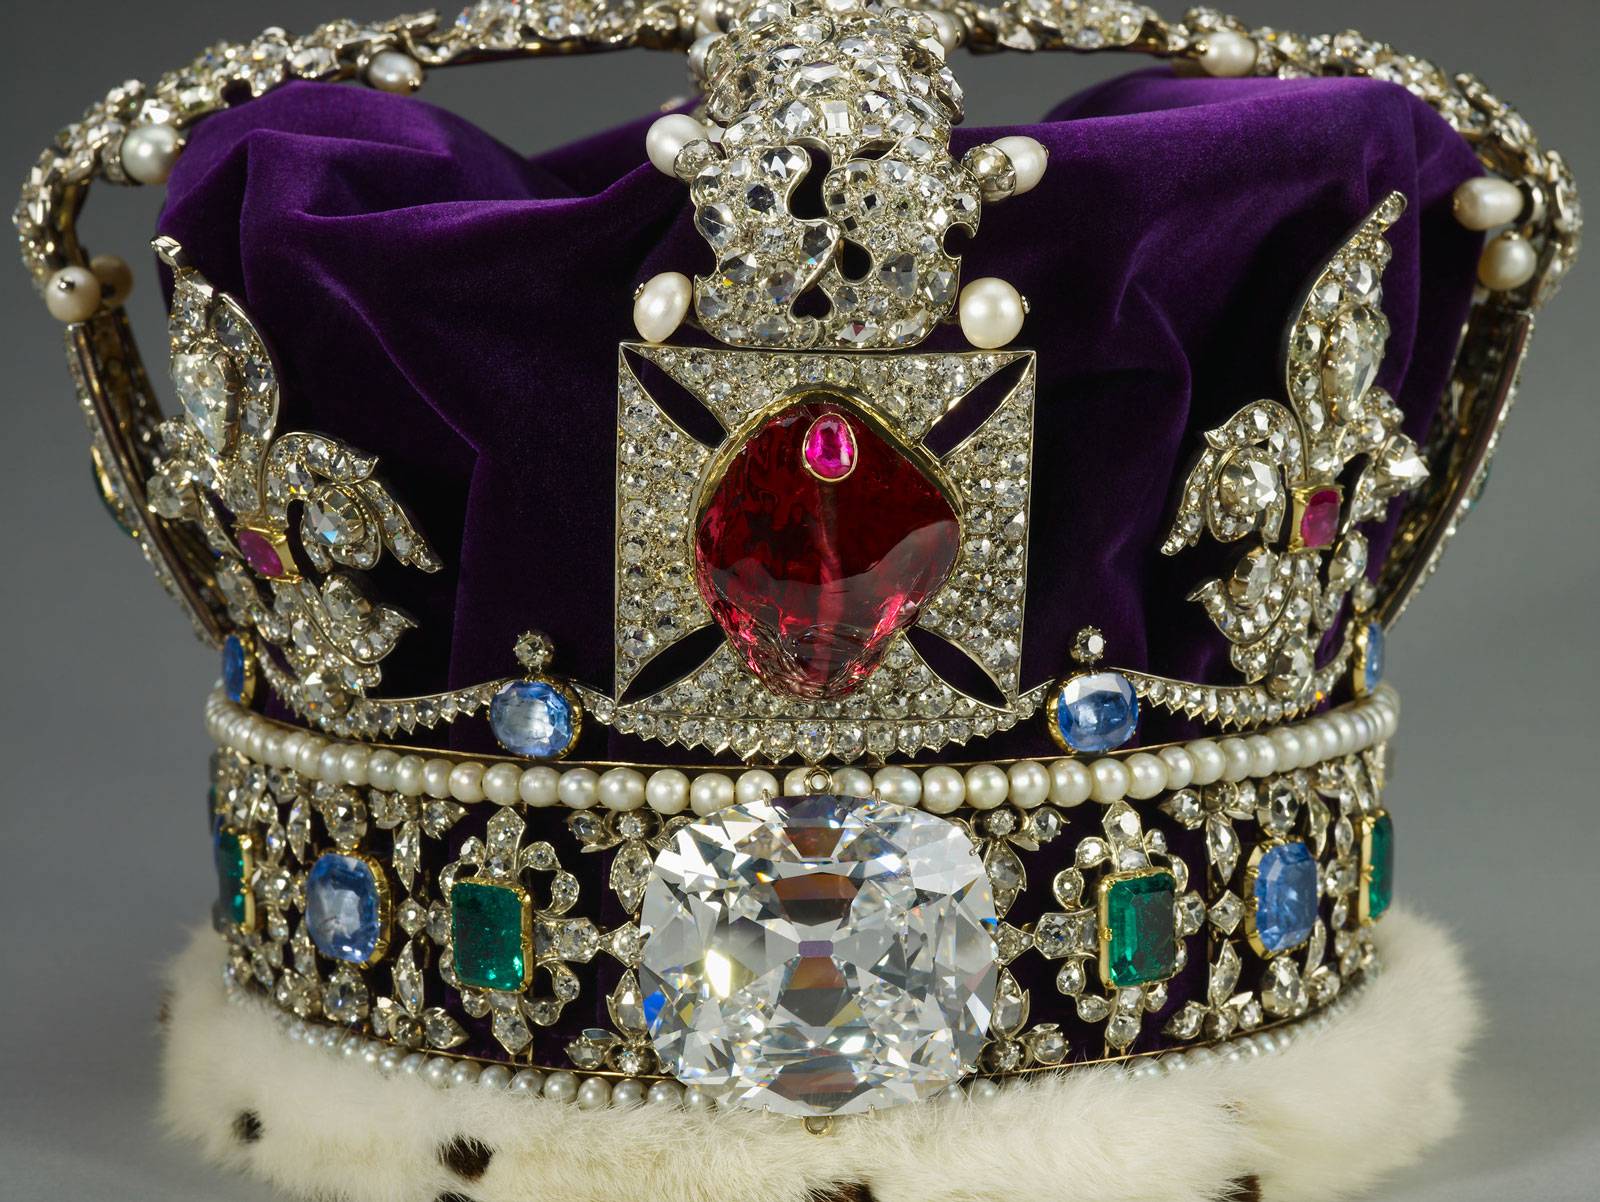 The Black Prince's ruby, a historic red spinel set in the Imperial State Crown and displayed in the Tower of London. A ruby, set in gold, is secured to the top of the spinel. (Photo: S. Greenaway, reproduced with the kind permission of H.M. The Queen. Crown Copyright reserved)